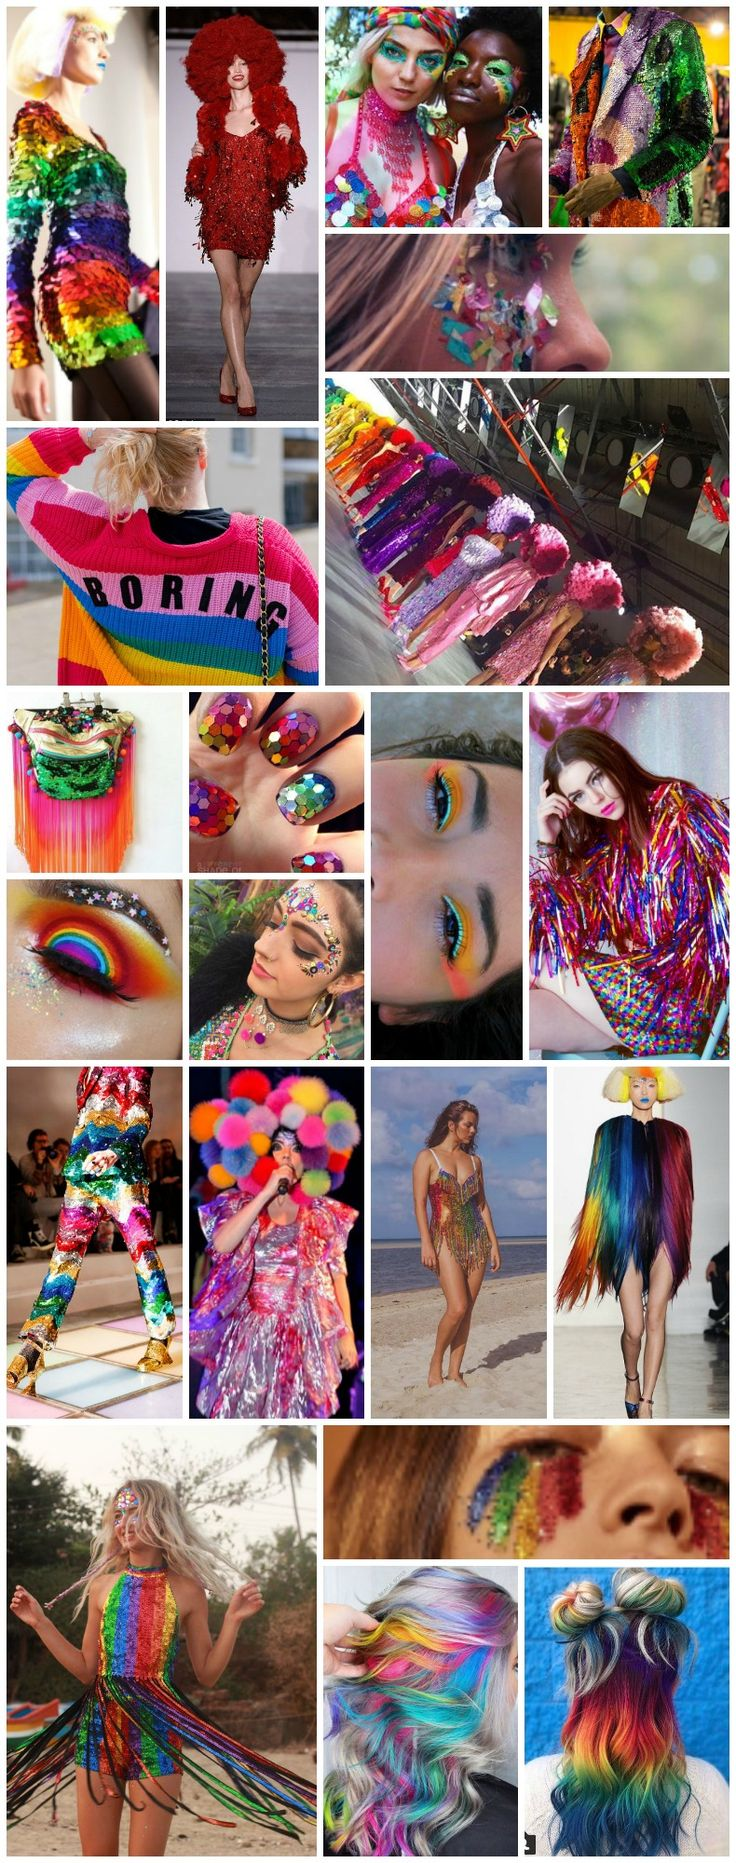 Rainbow-tastic festival fashion inspiration for Bestival's year of colour